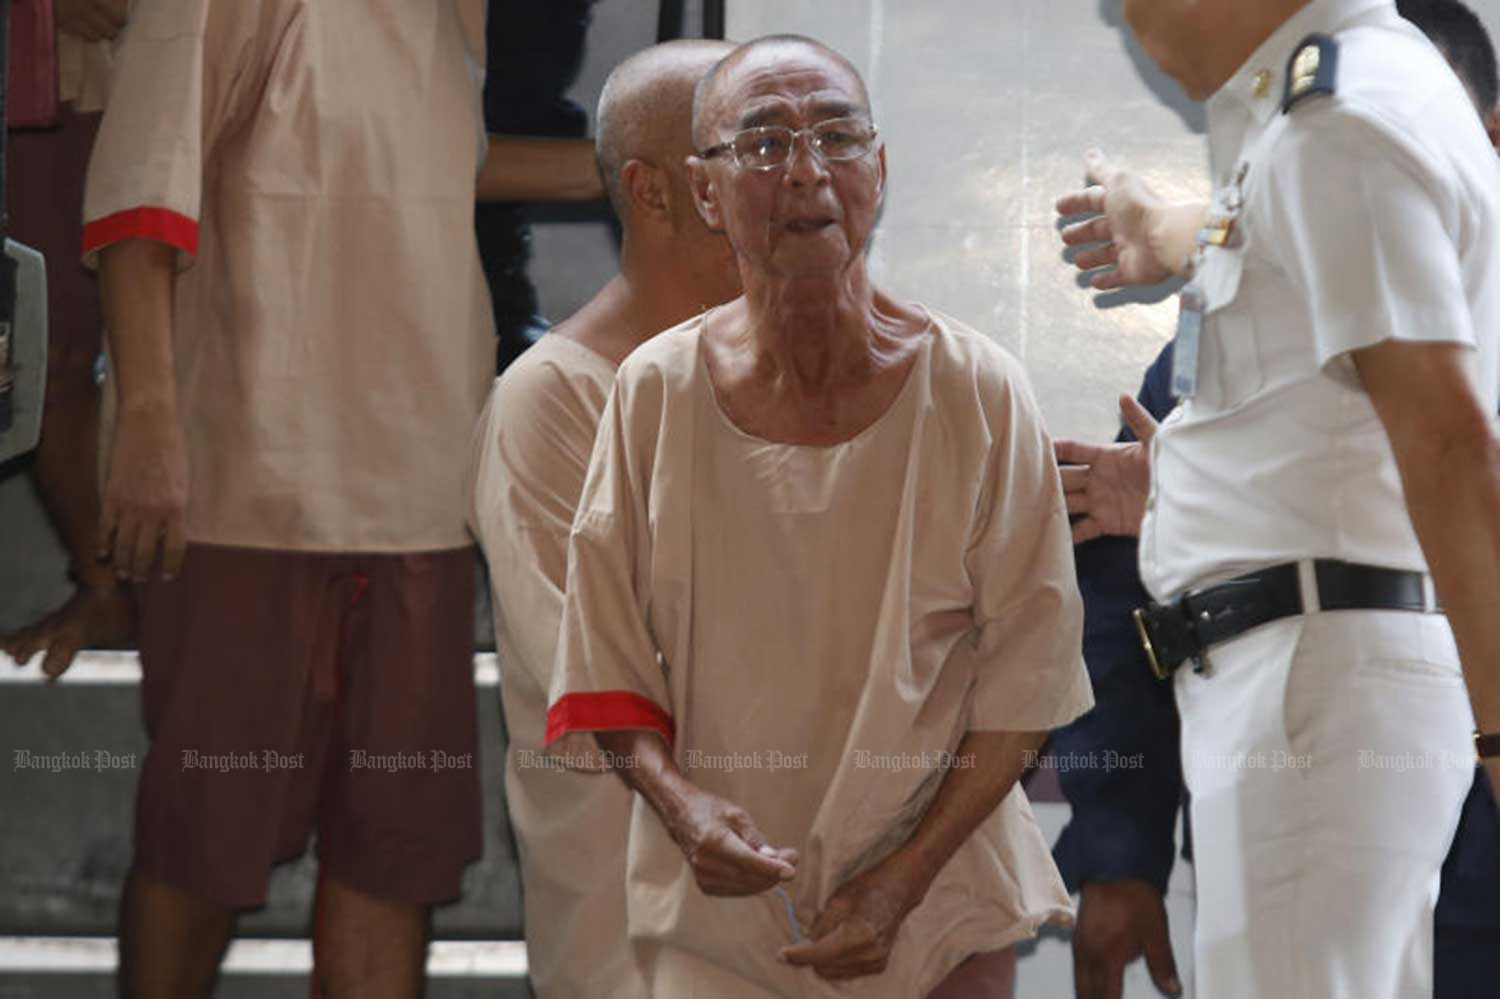 Lao Ta Saenlee, then 77, arrives at the Criminal Court in Bangkok on Dec 13, 2017, for judgement. He received life imprisonment. The Appeal Court on Thursday upheld the lower court's sentence. (File photo)